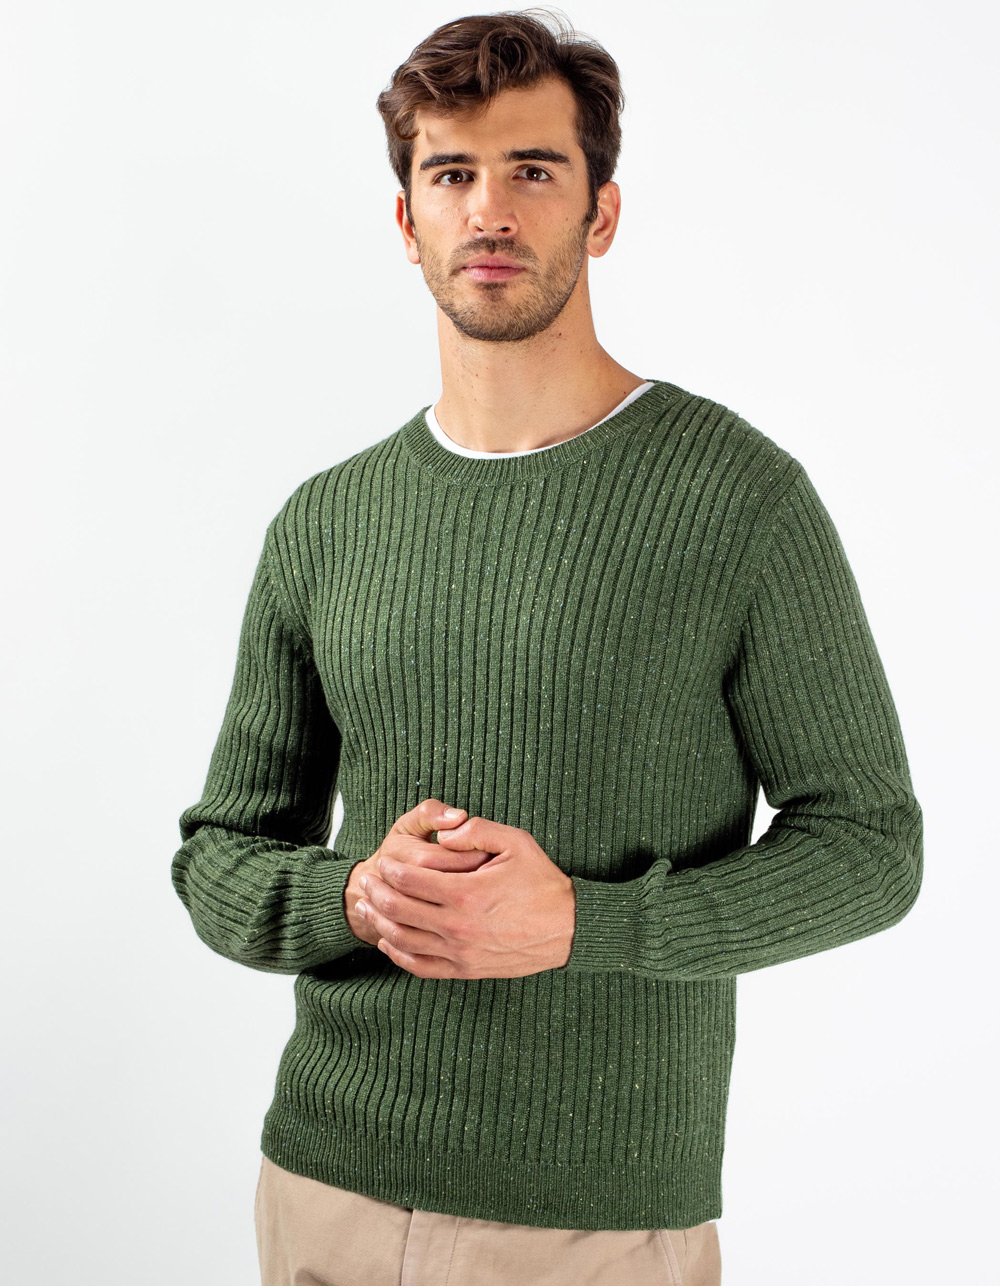 Green lambswool sweater